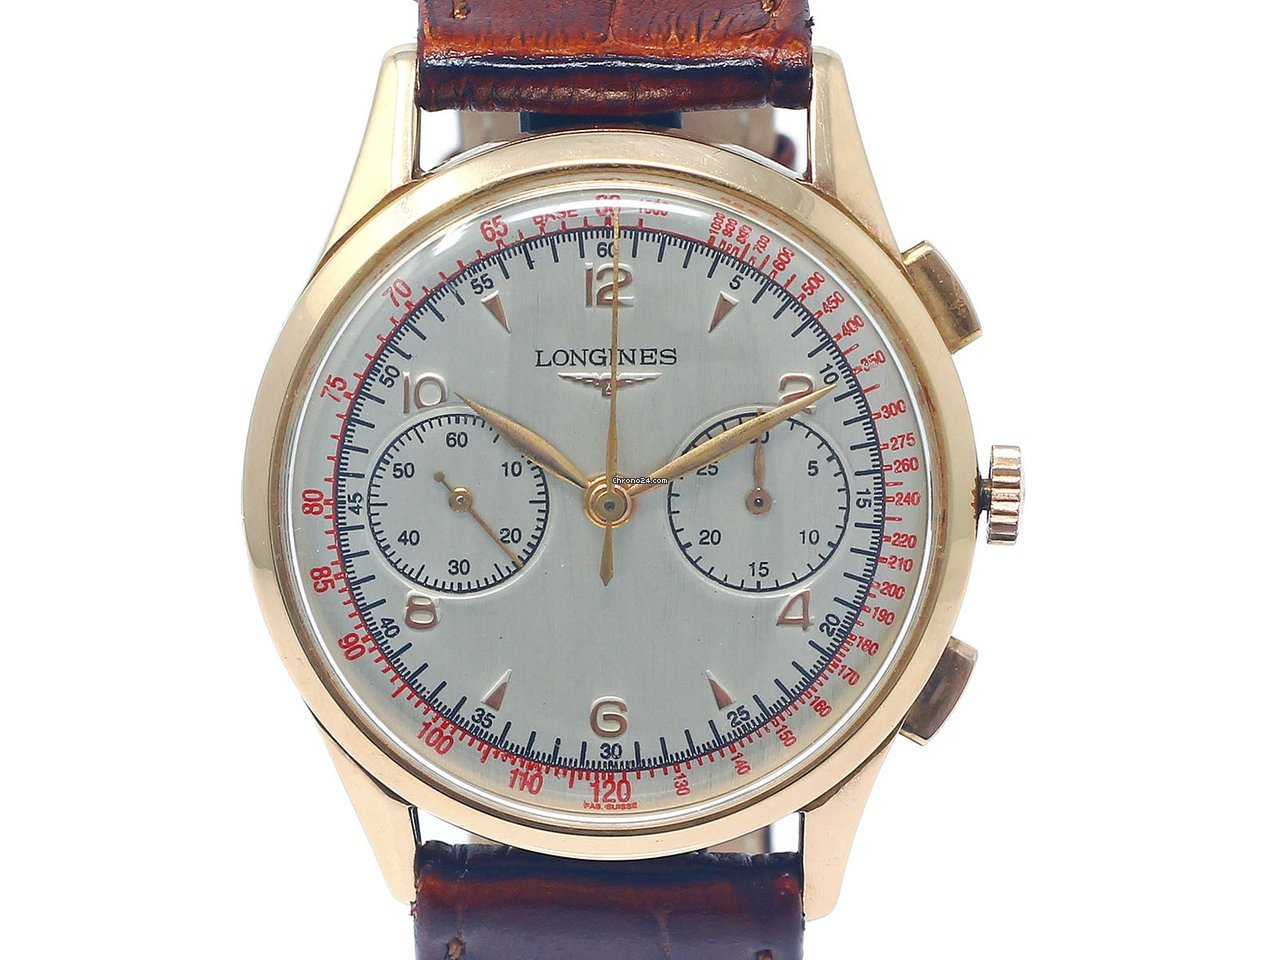 Longines 5967 1952 pre-owned